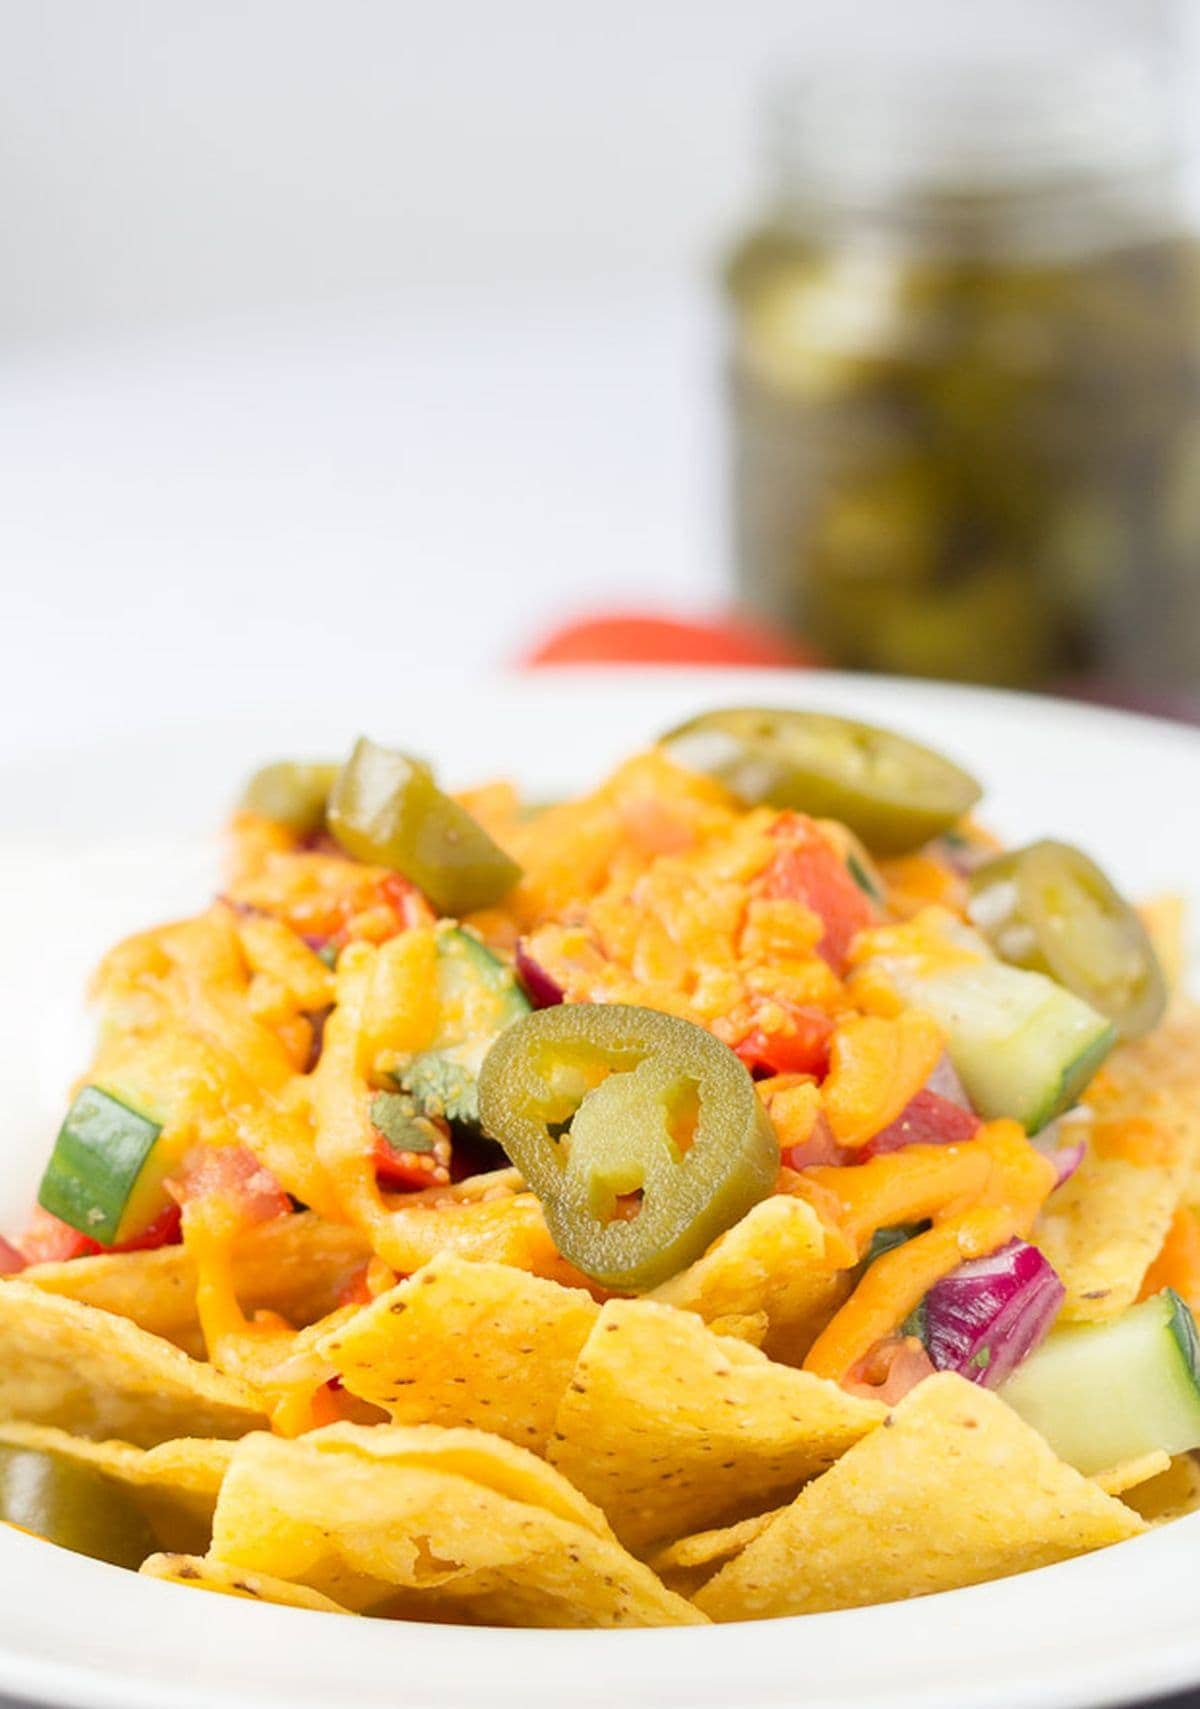 A plate of nachos with spicy salsa and melted cheese on top.